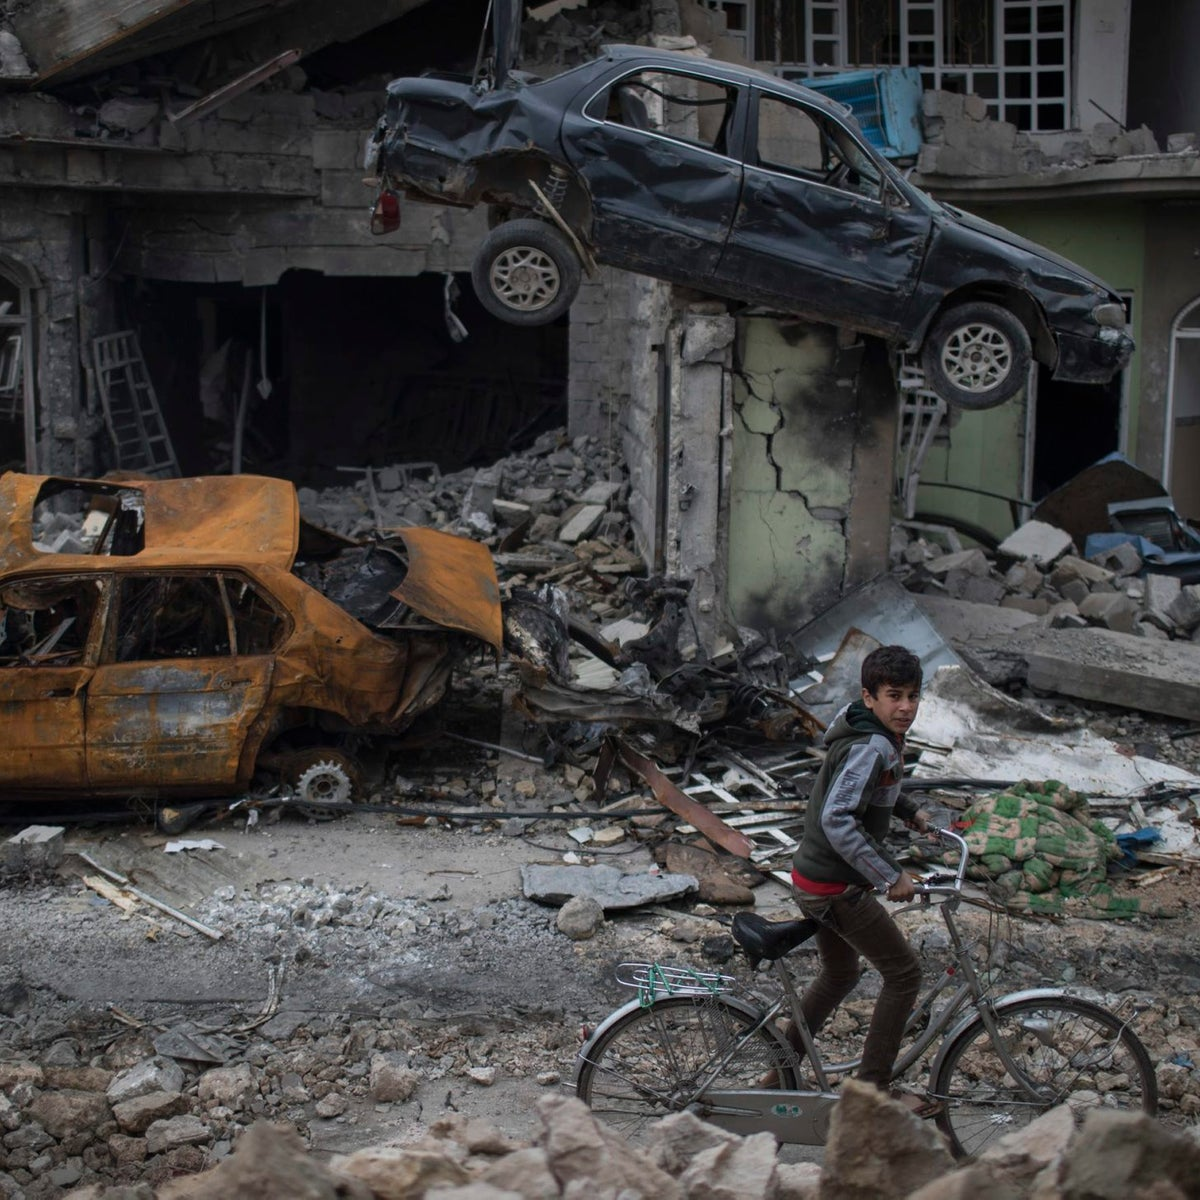 A boy rides his bike past destroyed cars and houses in a neighborhood recently liberated by Iraqi security forces on the western side of Mosul, Iraq, Sunday, March 19, 2017.